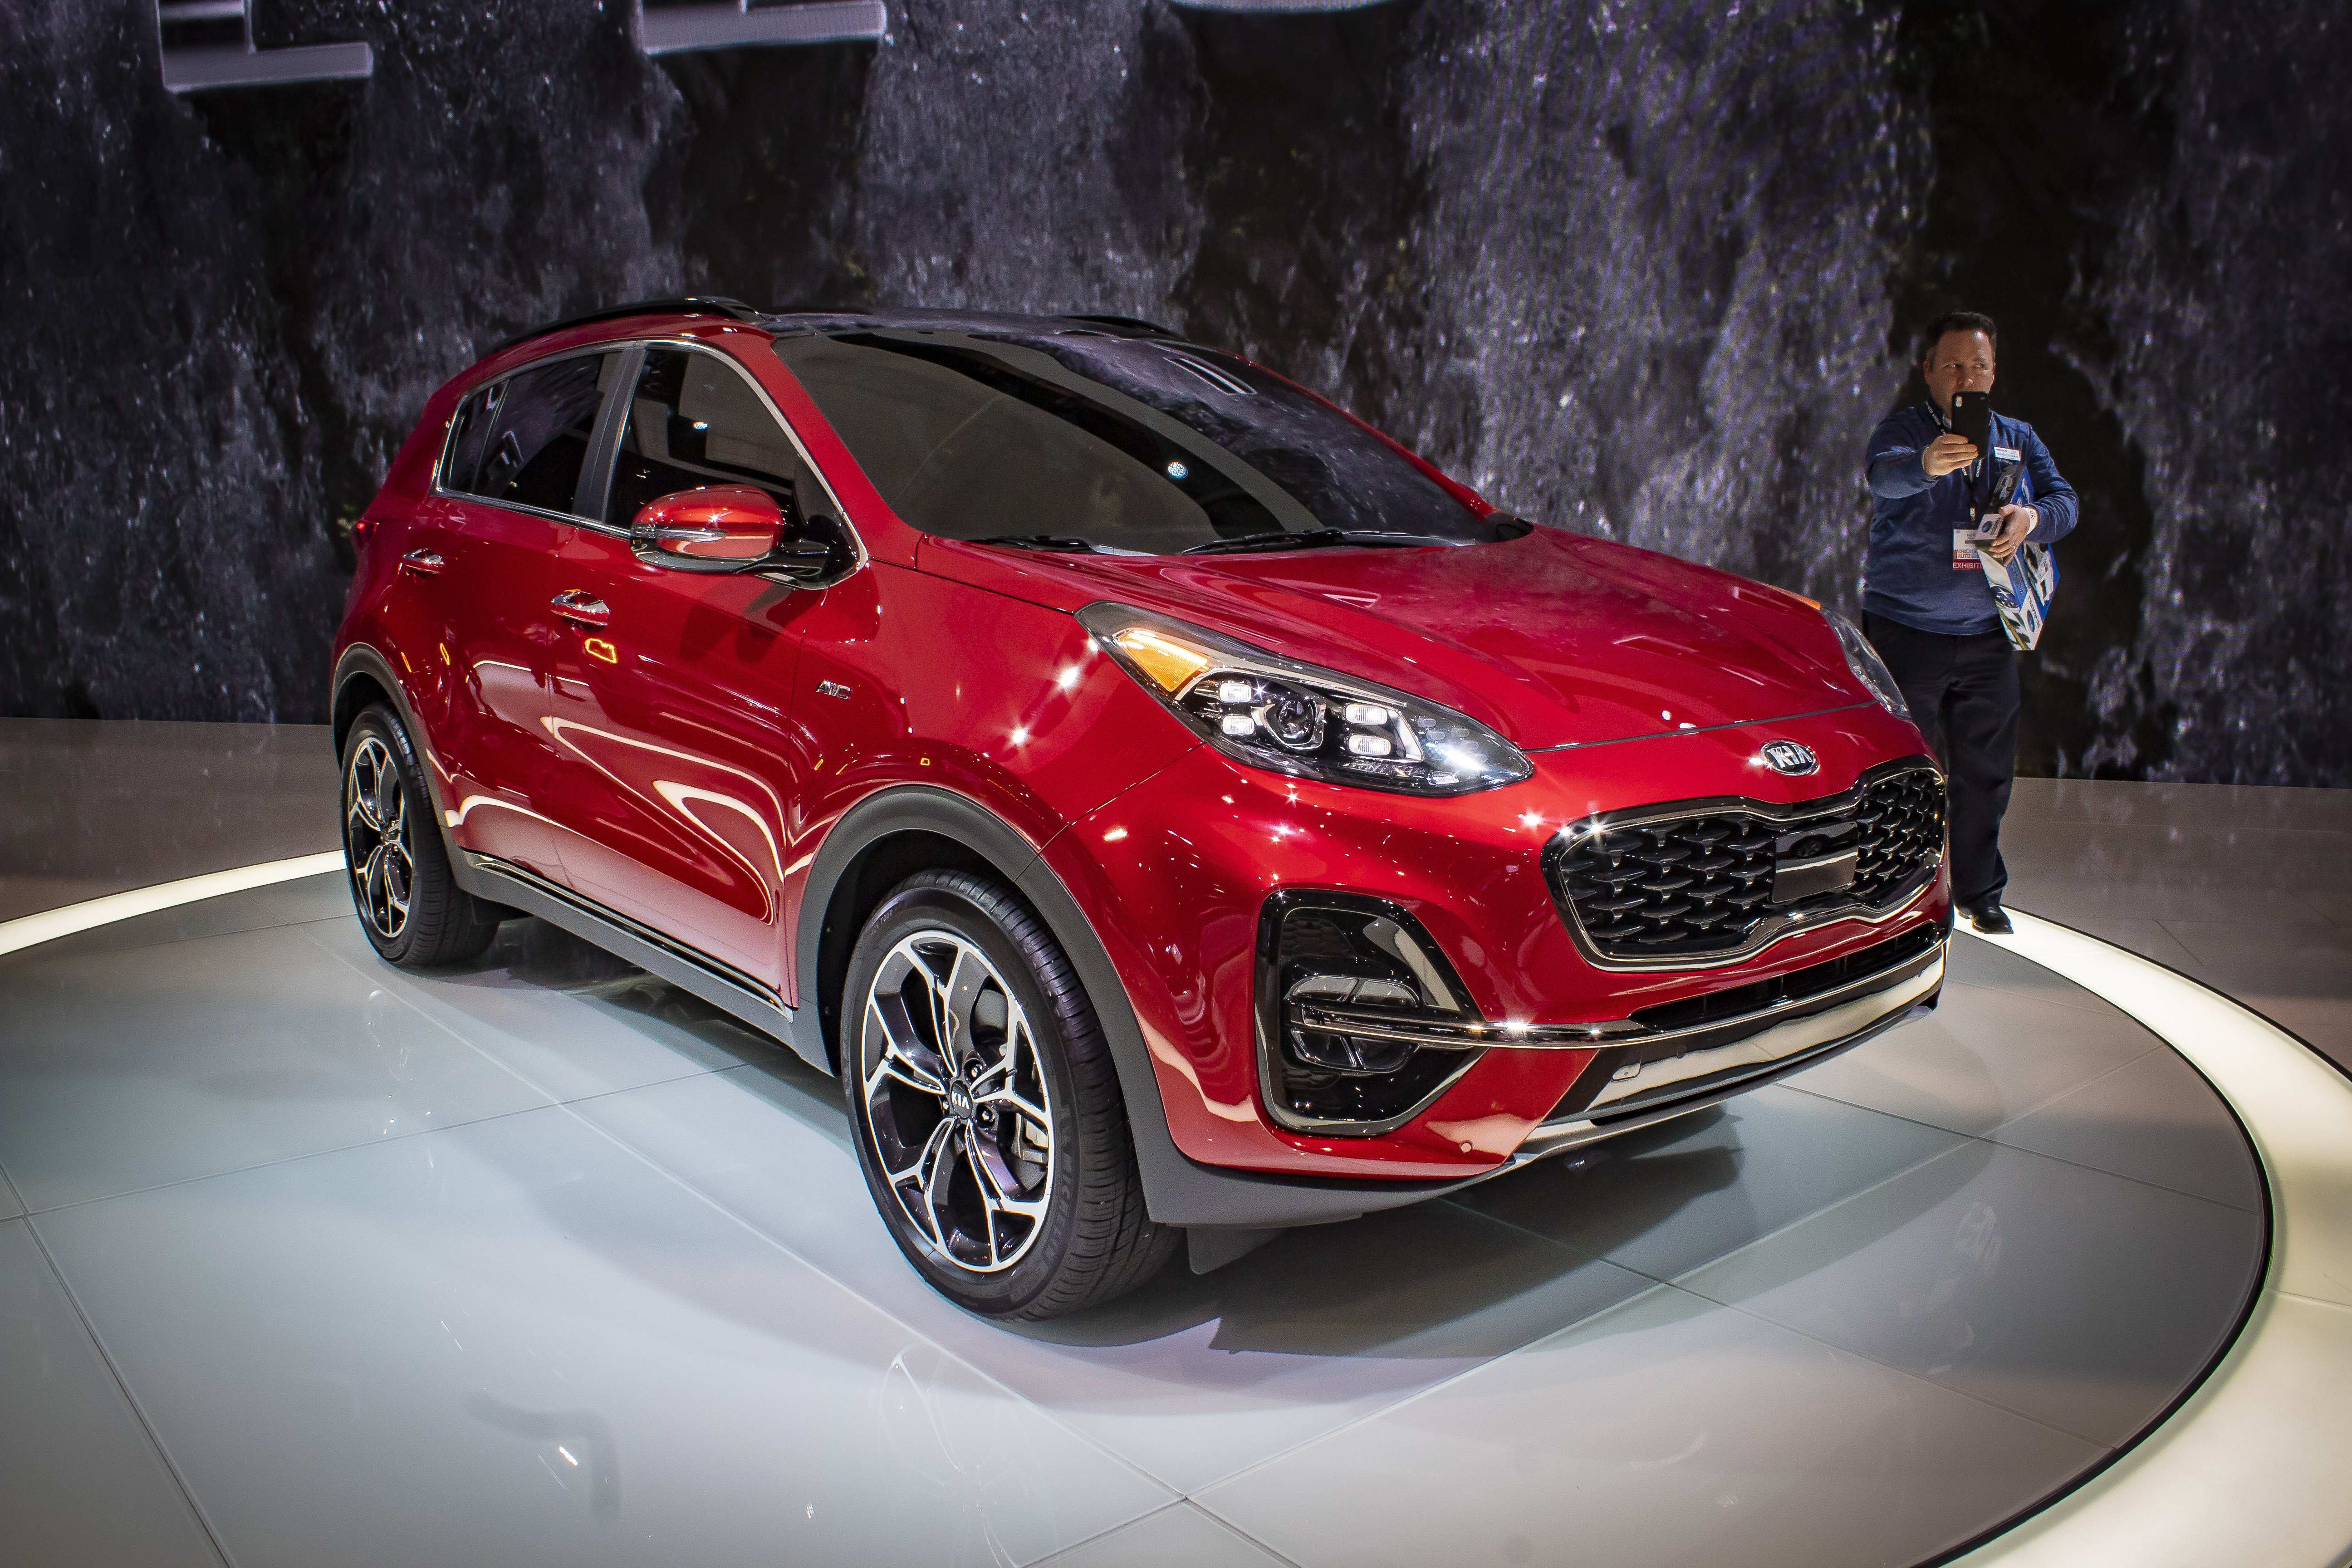 16 All New When Does The 2020 Kia Sportage Come Out Rumors by When Does The 2020 Kia Sportage Come Out